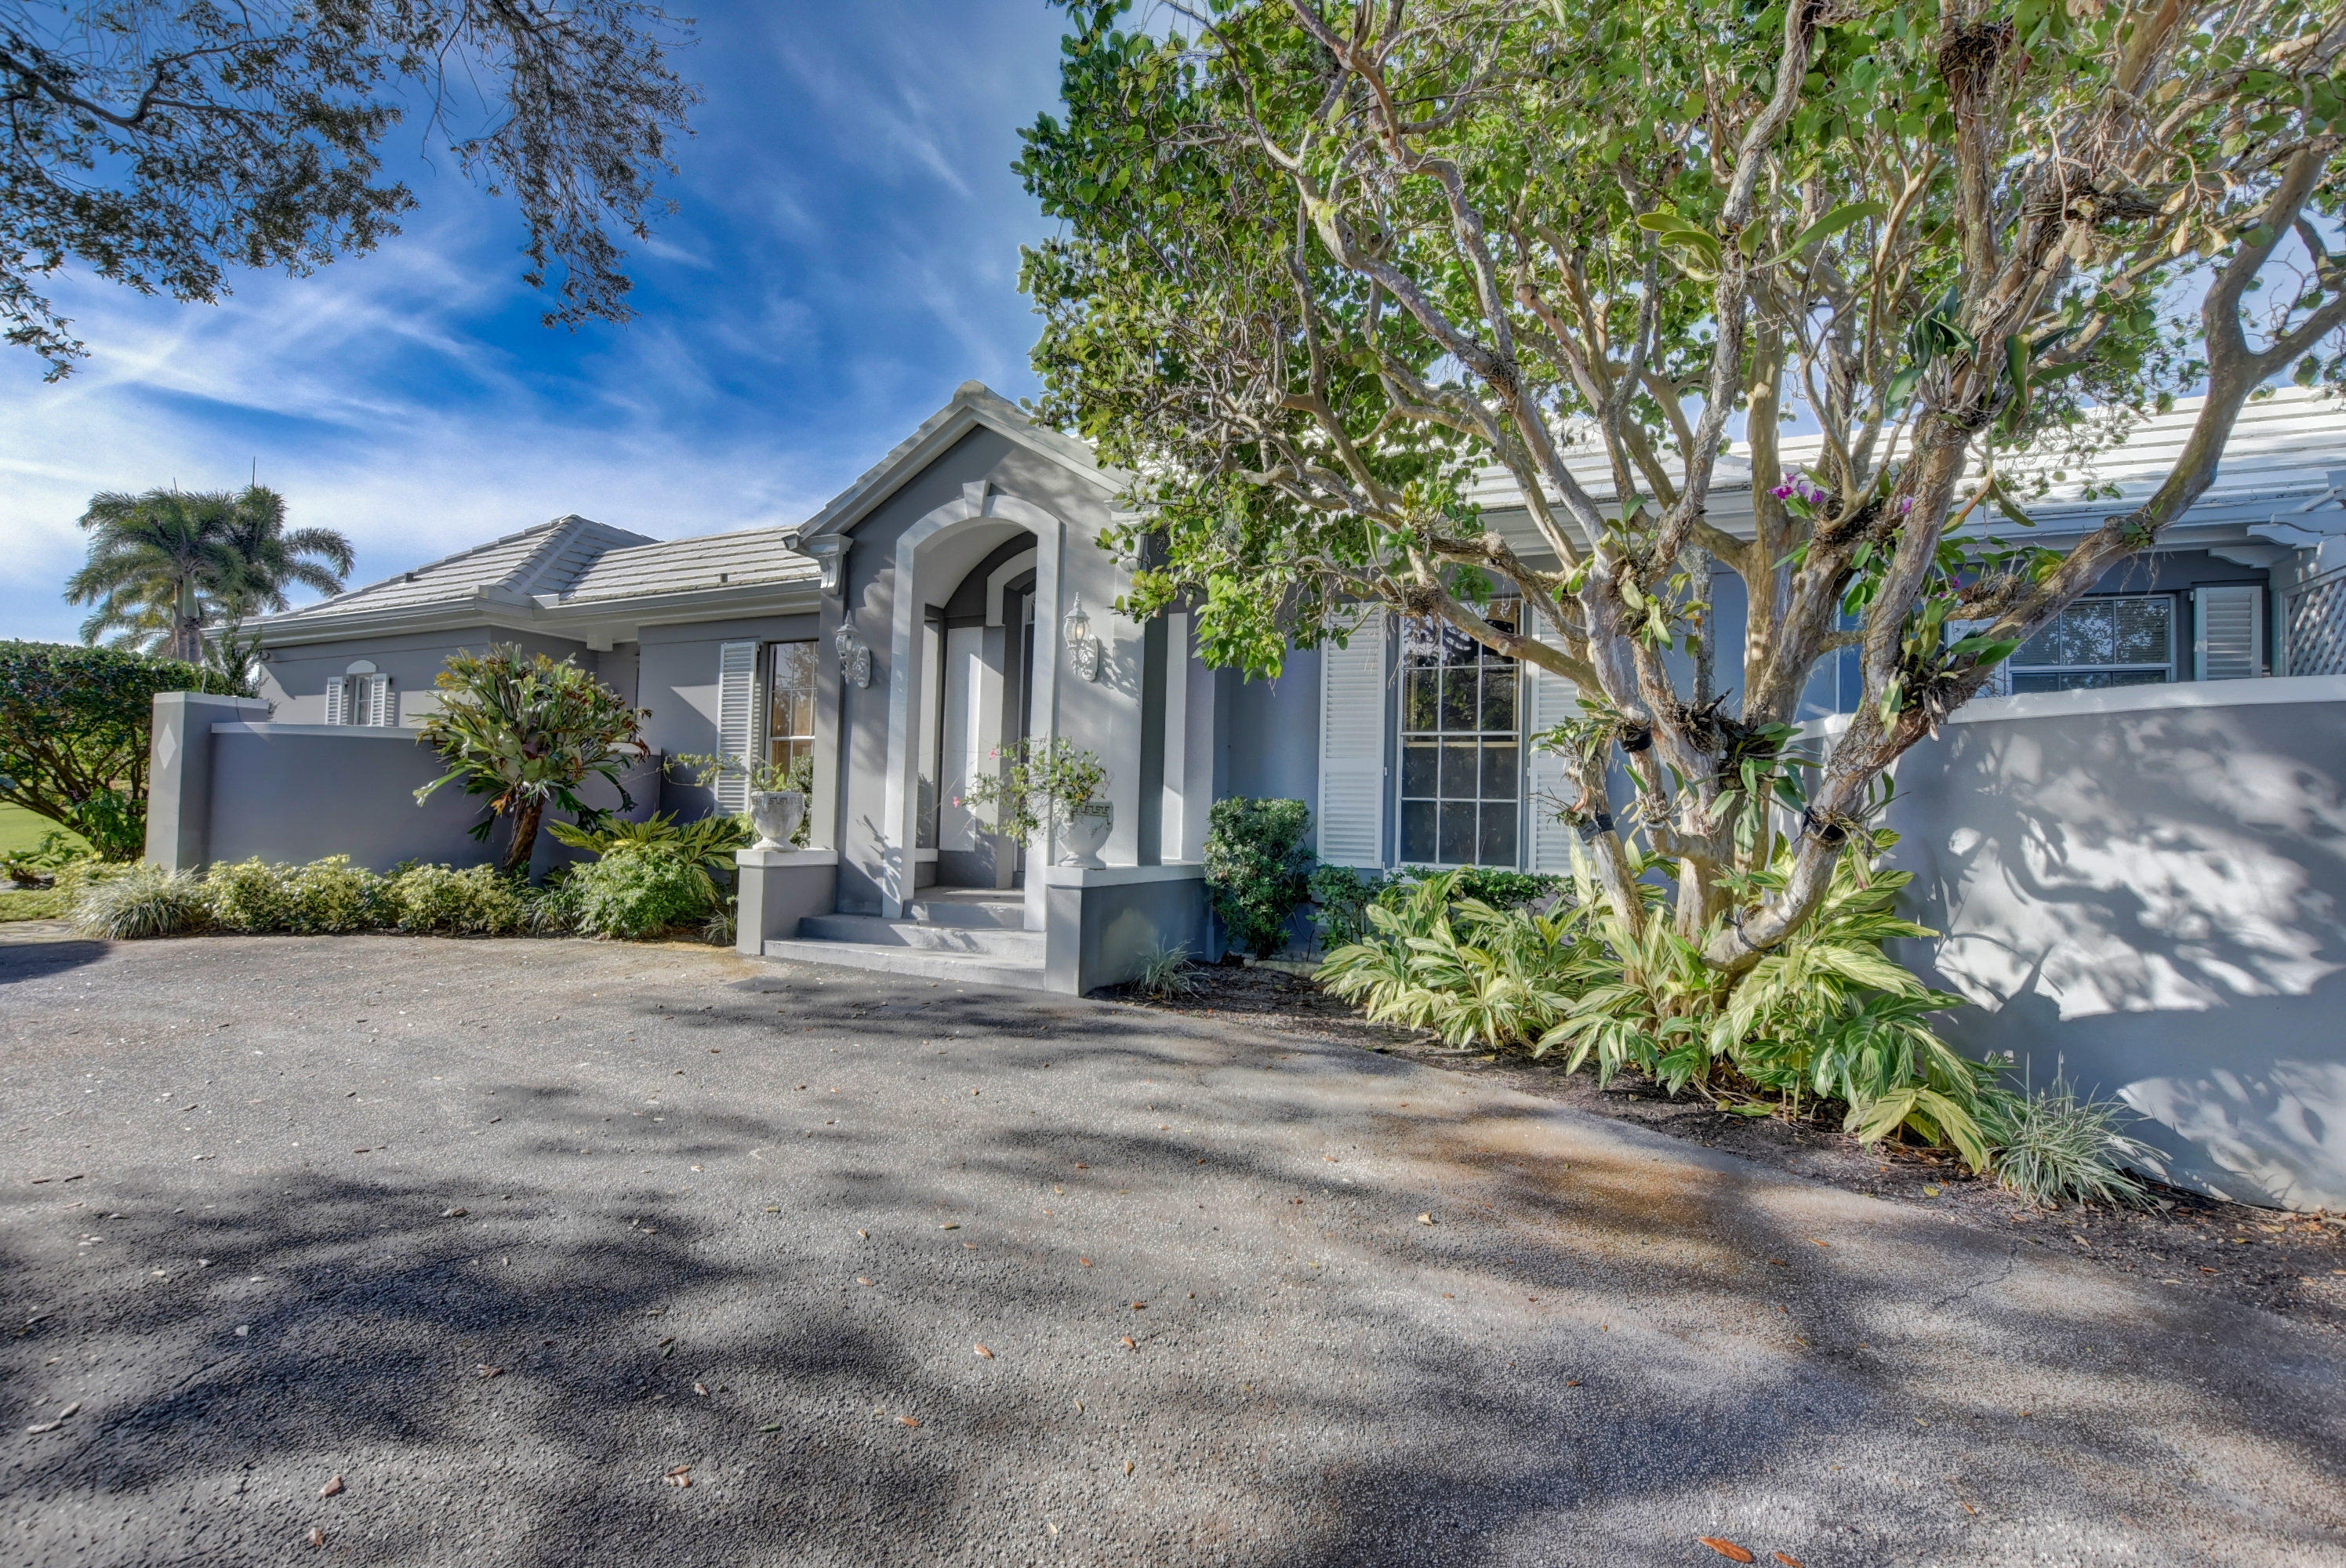 Home for sale in DARTMOUTH COLLEGE Village of Golf Florida